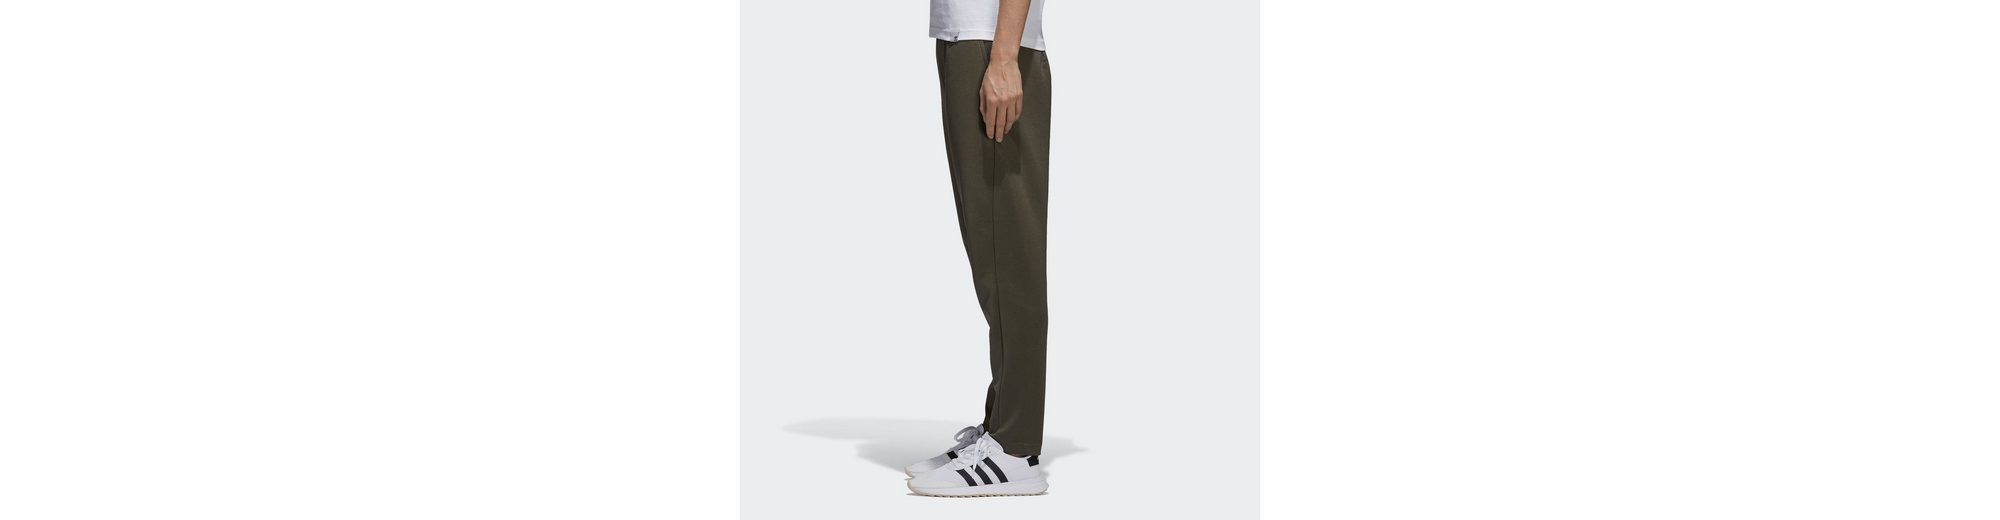 Xbyo Trainingshose Hose Slim Originals Adidas PCwq7pnE